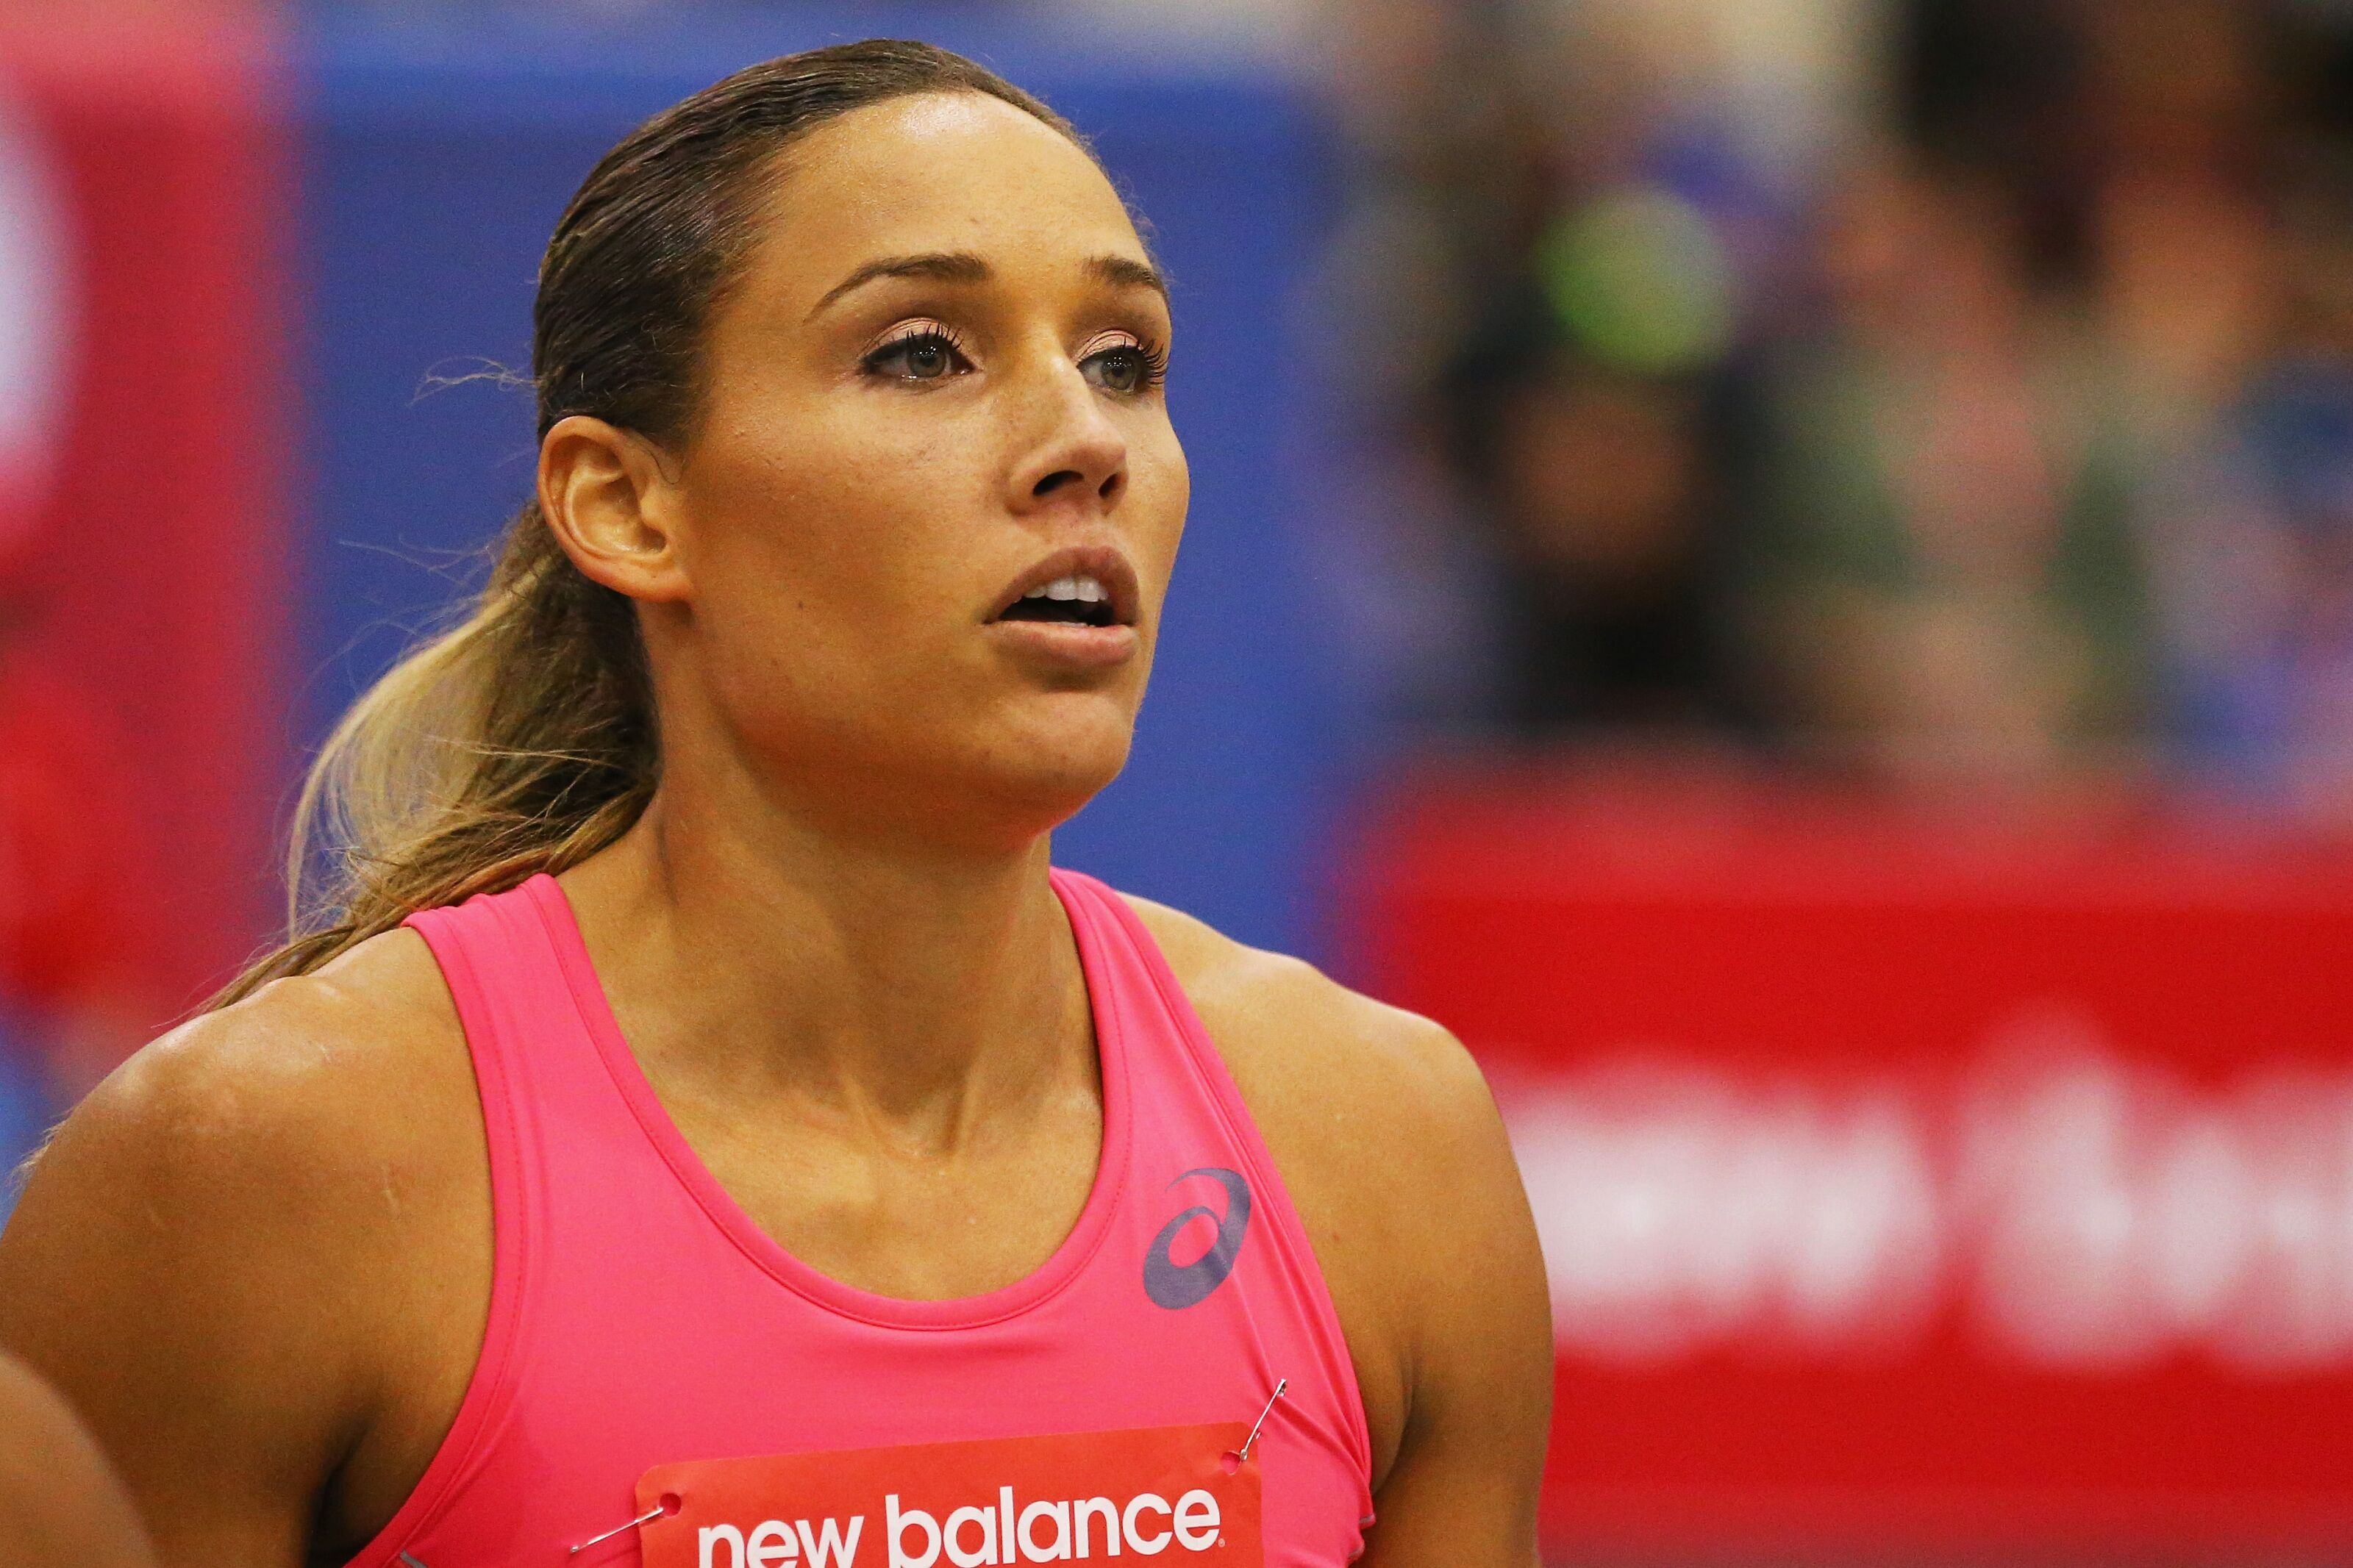 Lolo Jones on managing pain and chasing Olympic dreams